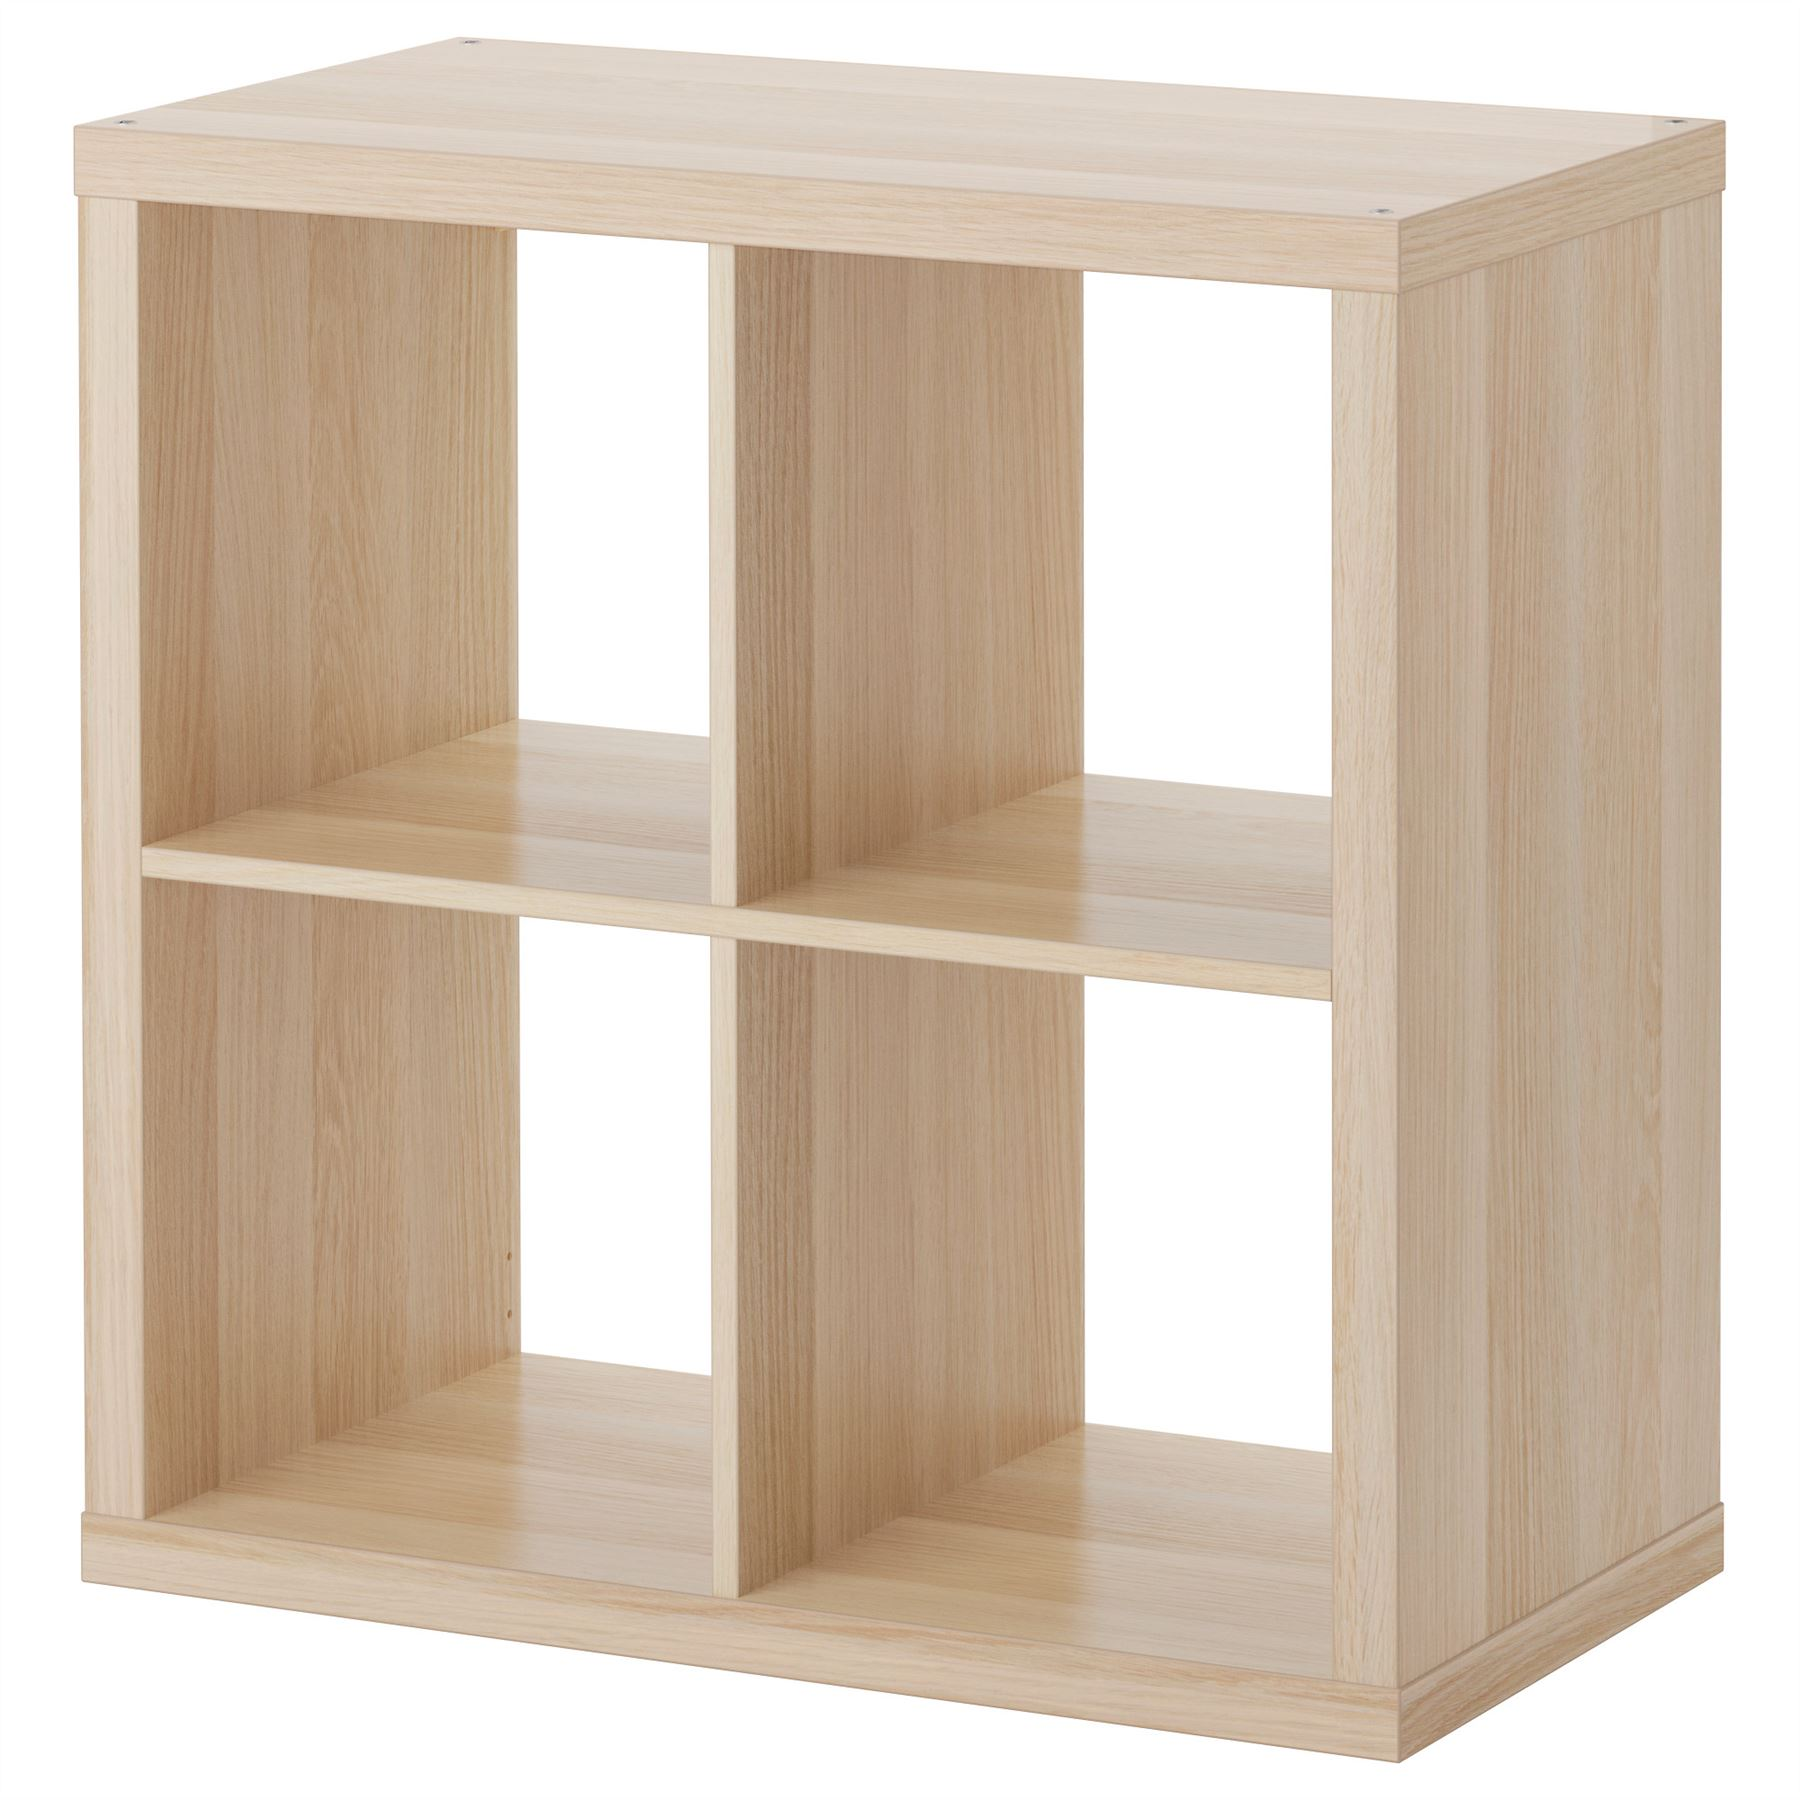 Ikea kallax 4 cube storage bookcase square shelving unit for Ikea mensole cubo